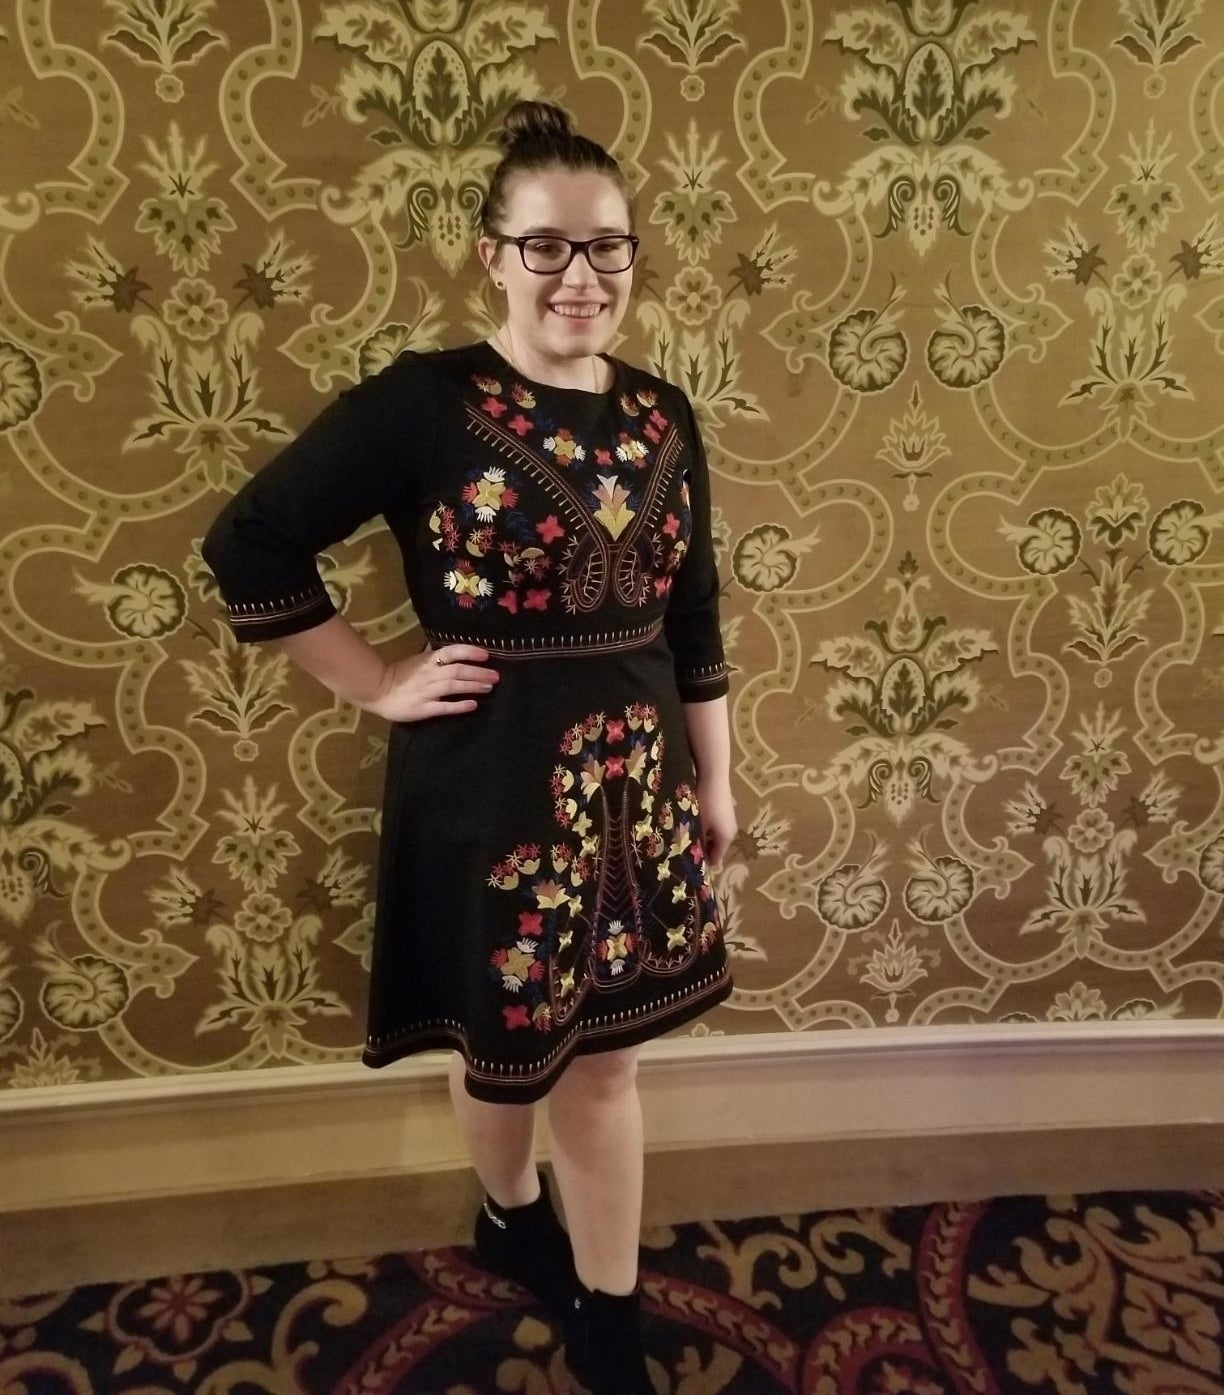 Reviewer wearing the knee-length black dress with yellow, red, and brown embroidery on it